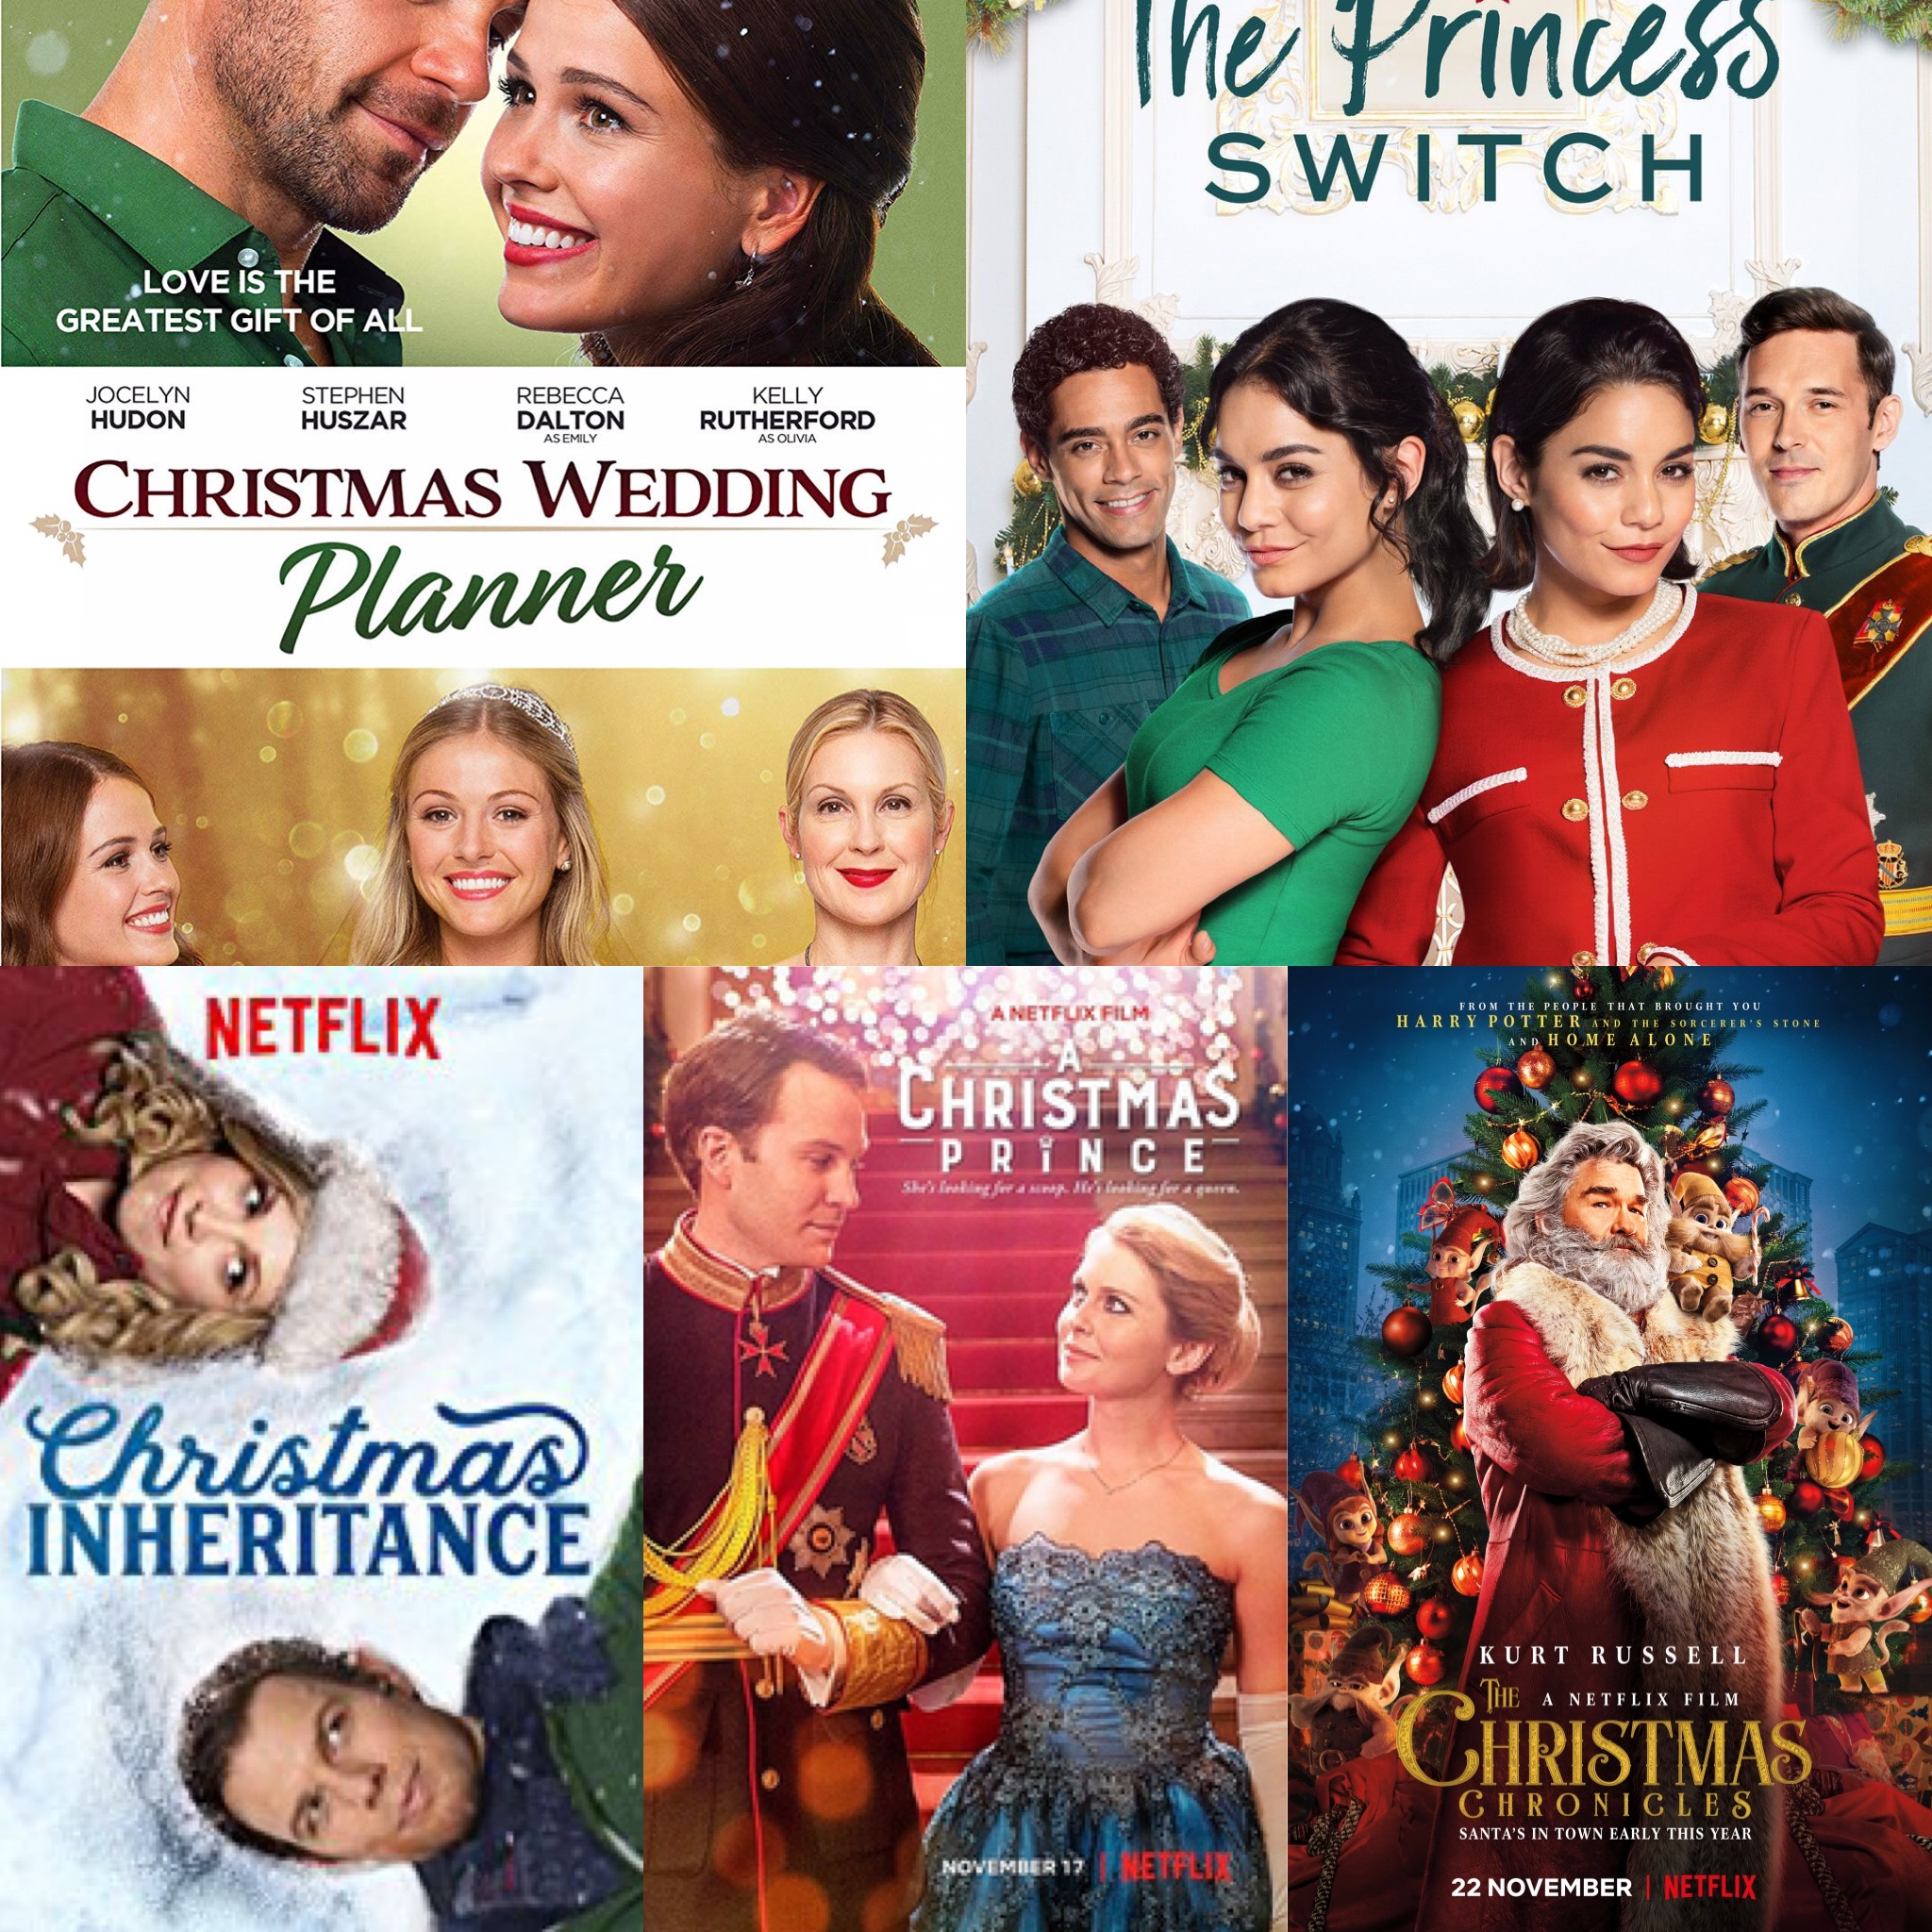 Christmas Wedding Planner.5 Netflix Original Christmas Movies From Worst To Best I